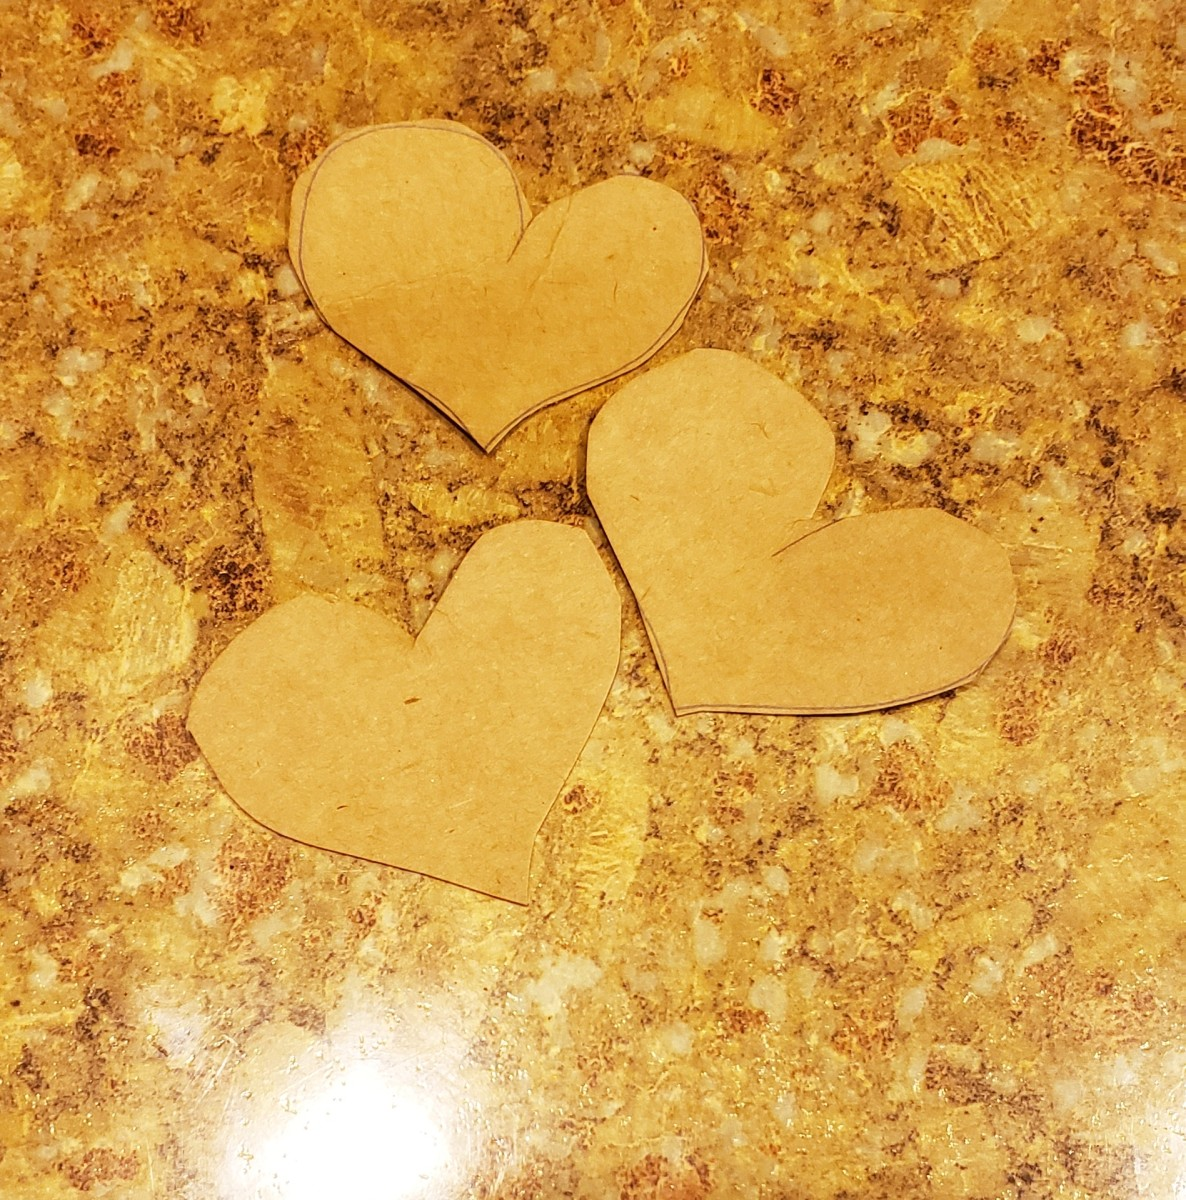 Cut out heart shapes from your cardboard.